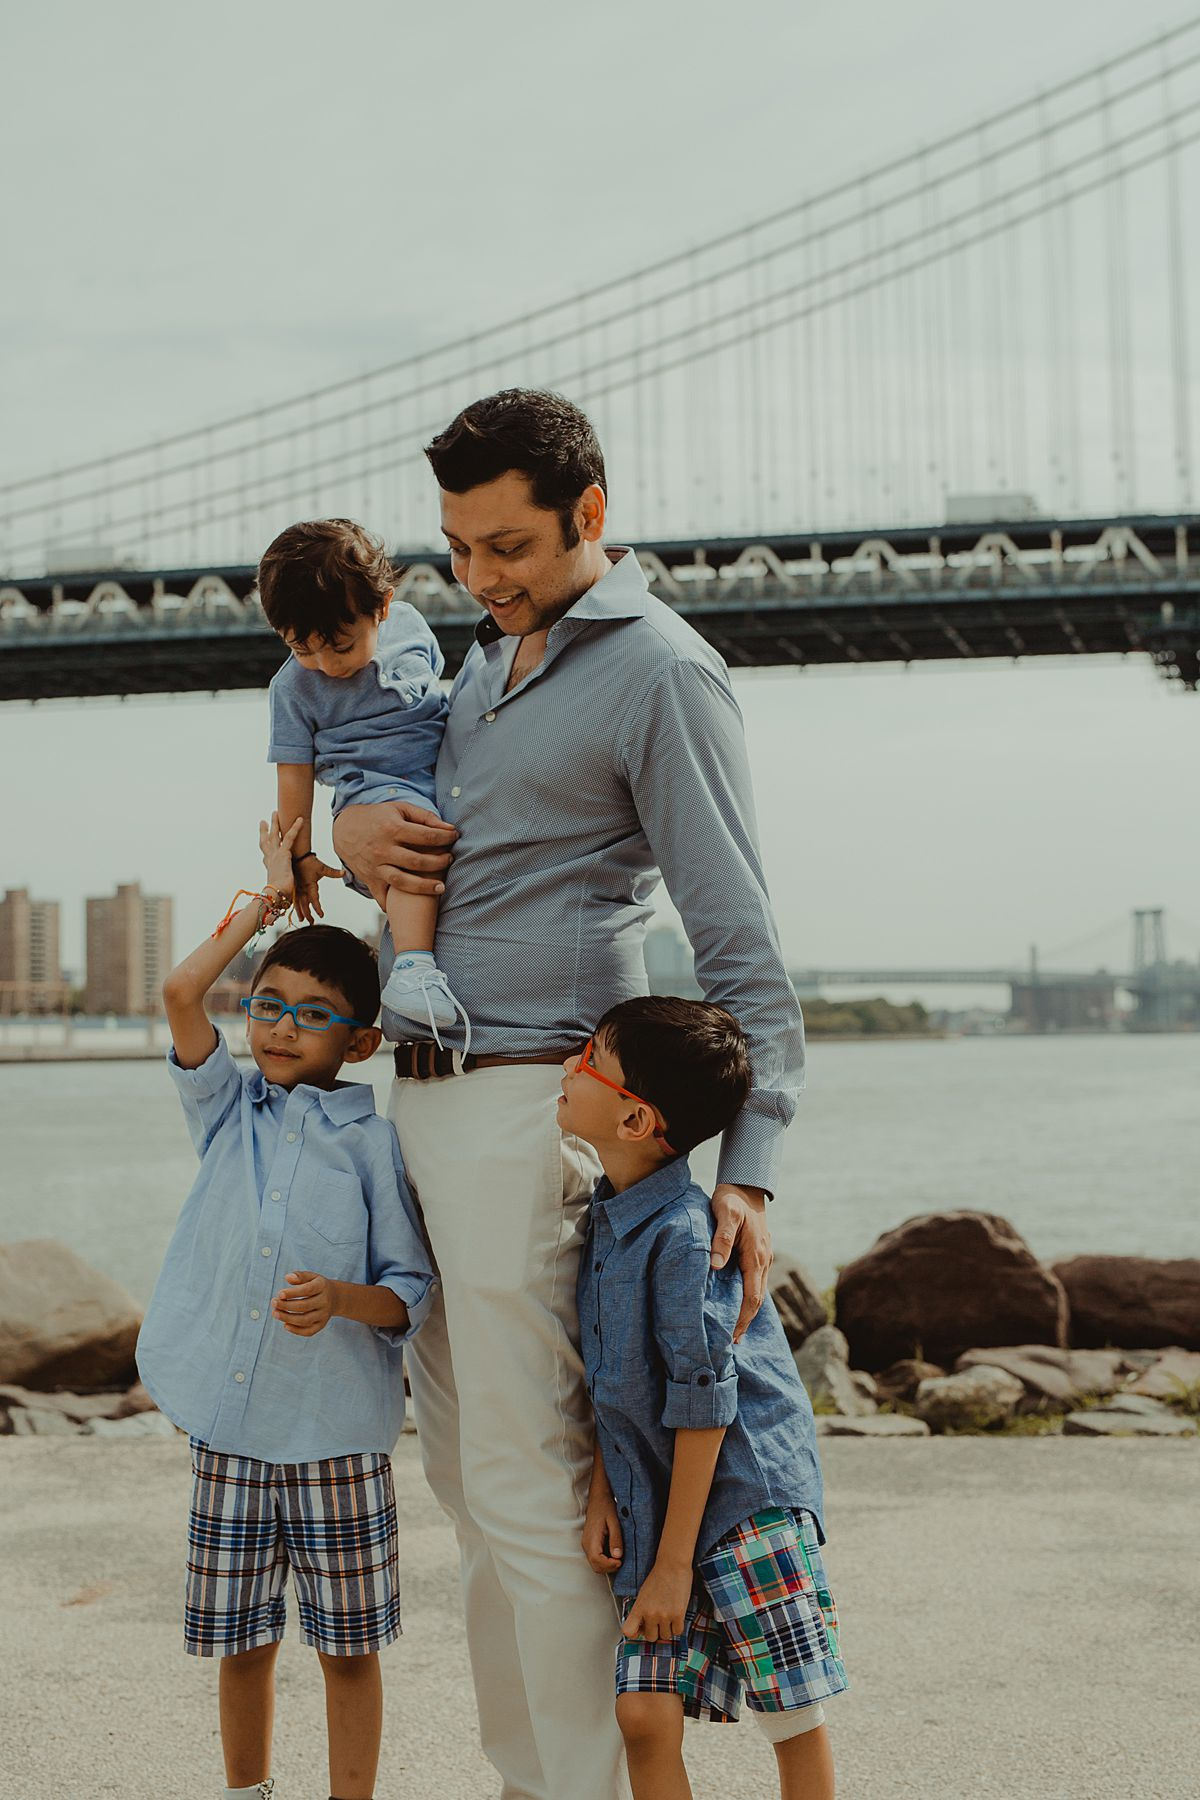 dad with son and nephews in front of manhattan bridge. photo by krystil mcdowall